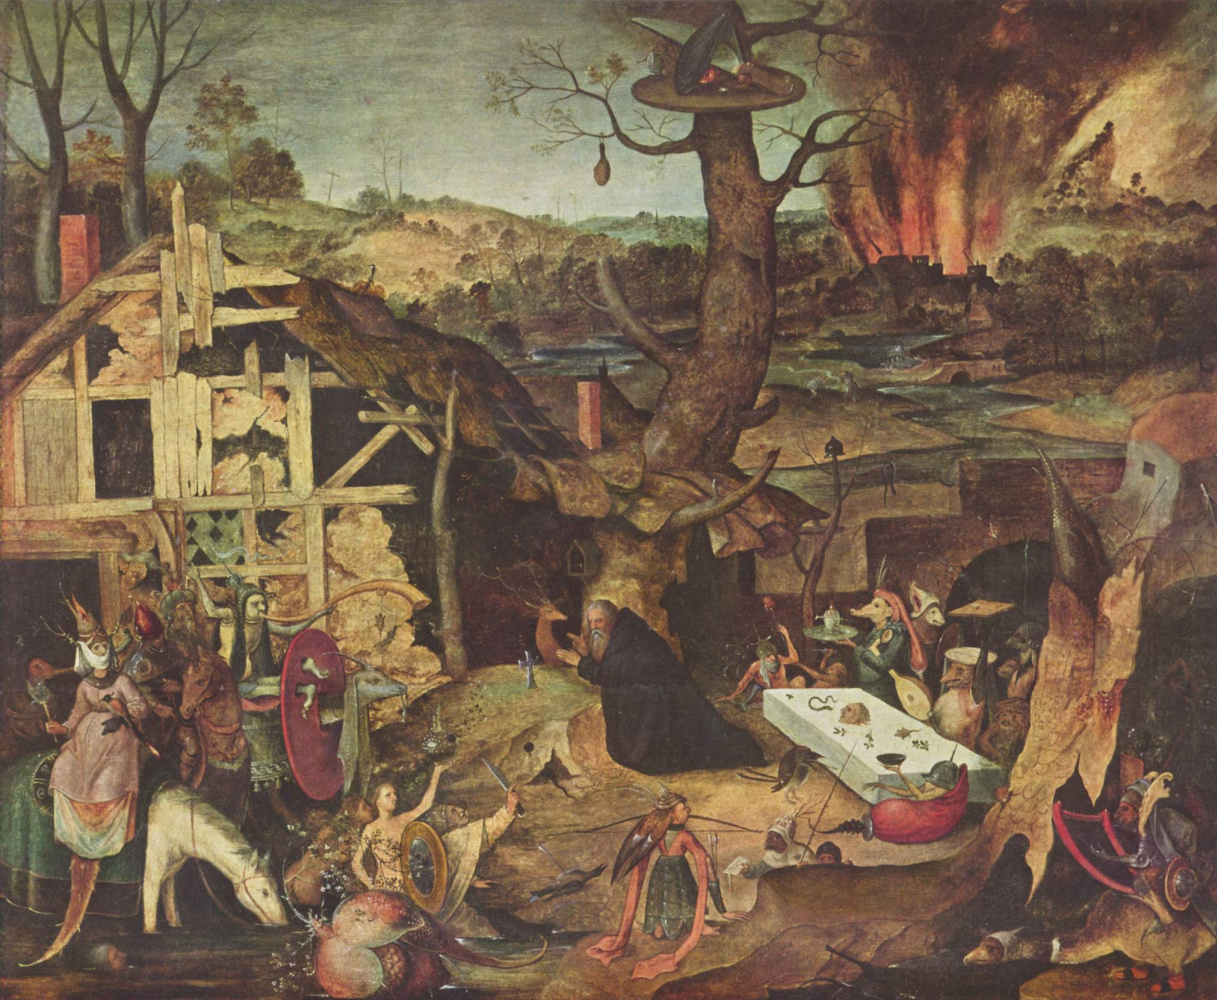 Peter Hayes. The temptation of St. Anthony